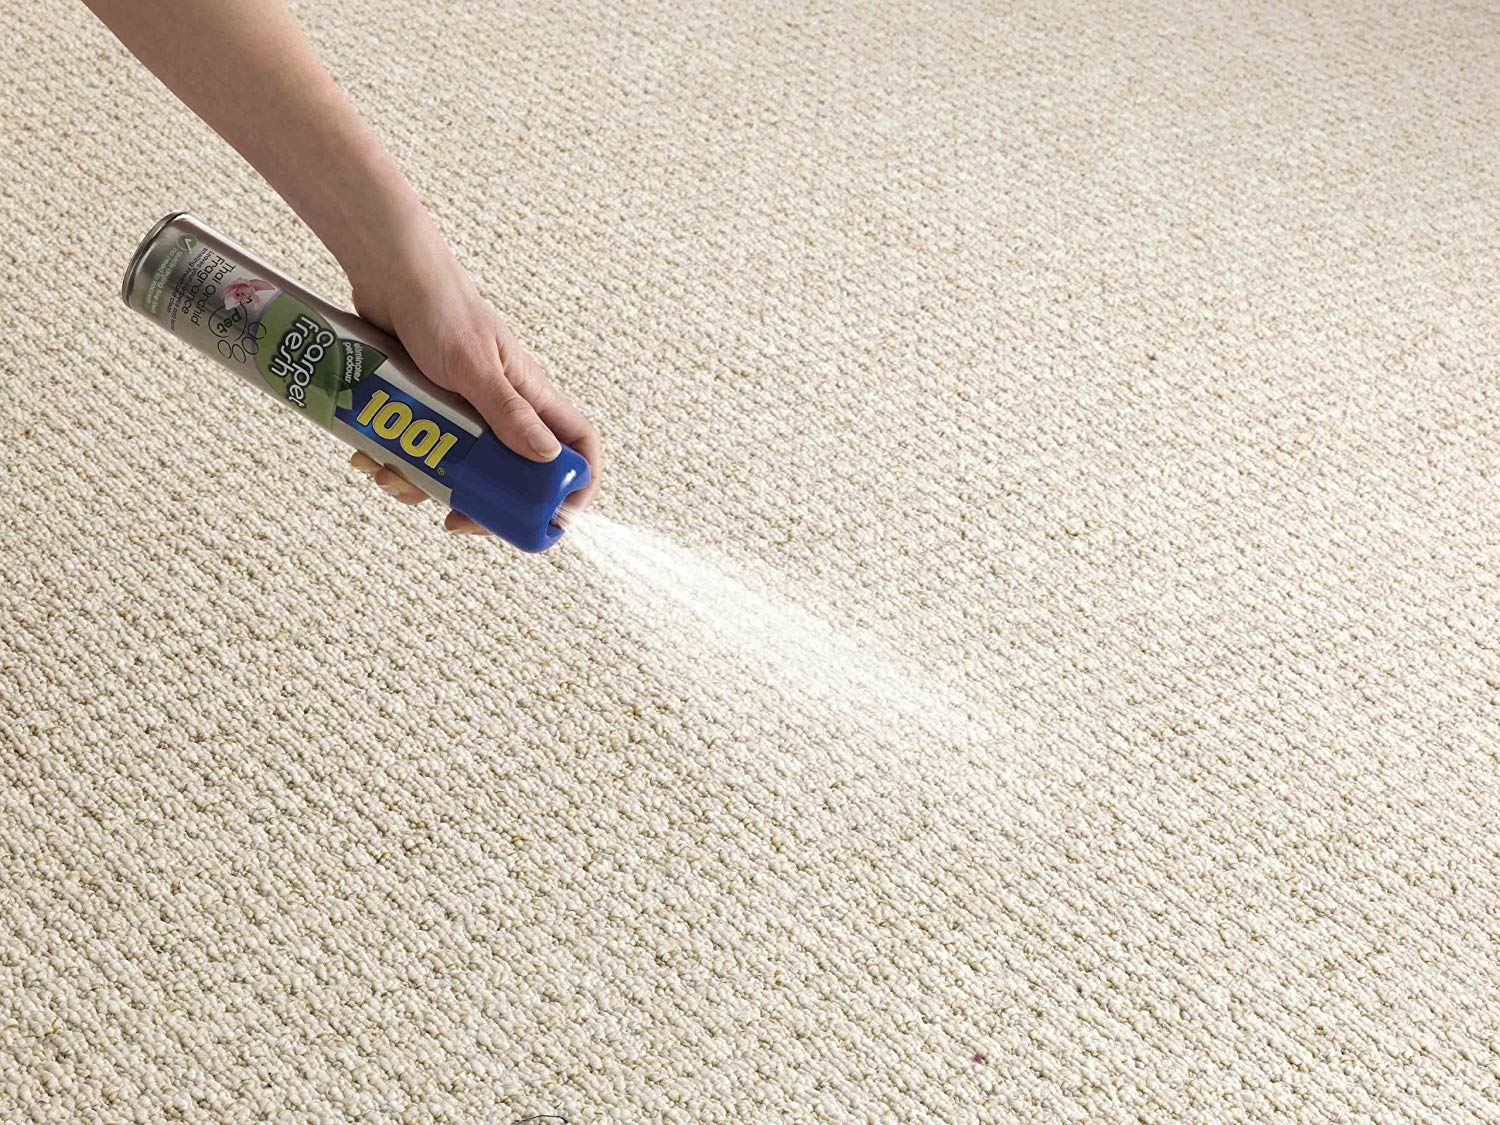 The best carpet cleaning products